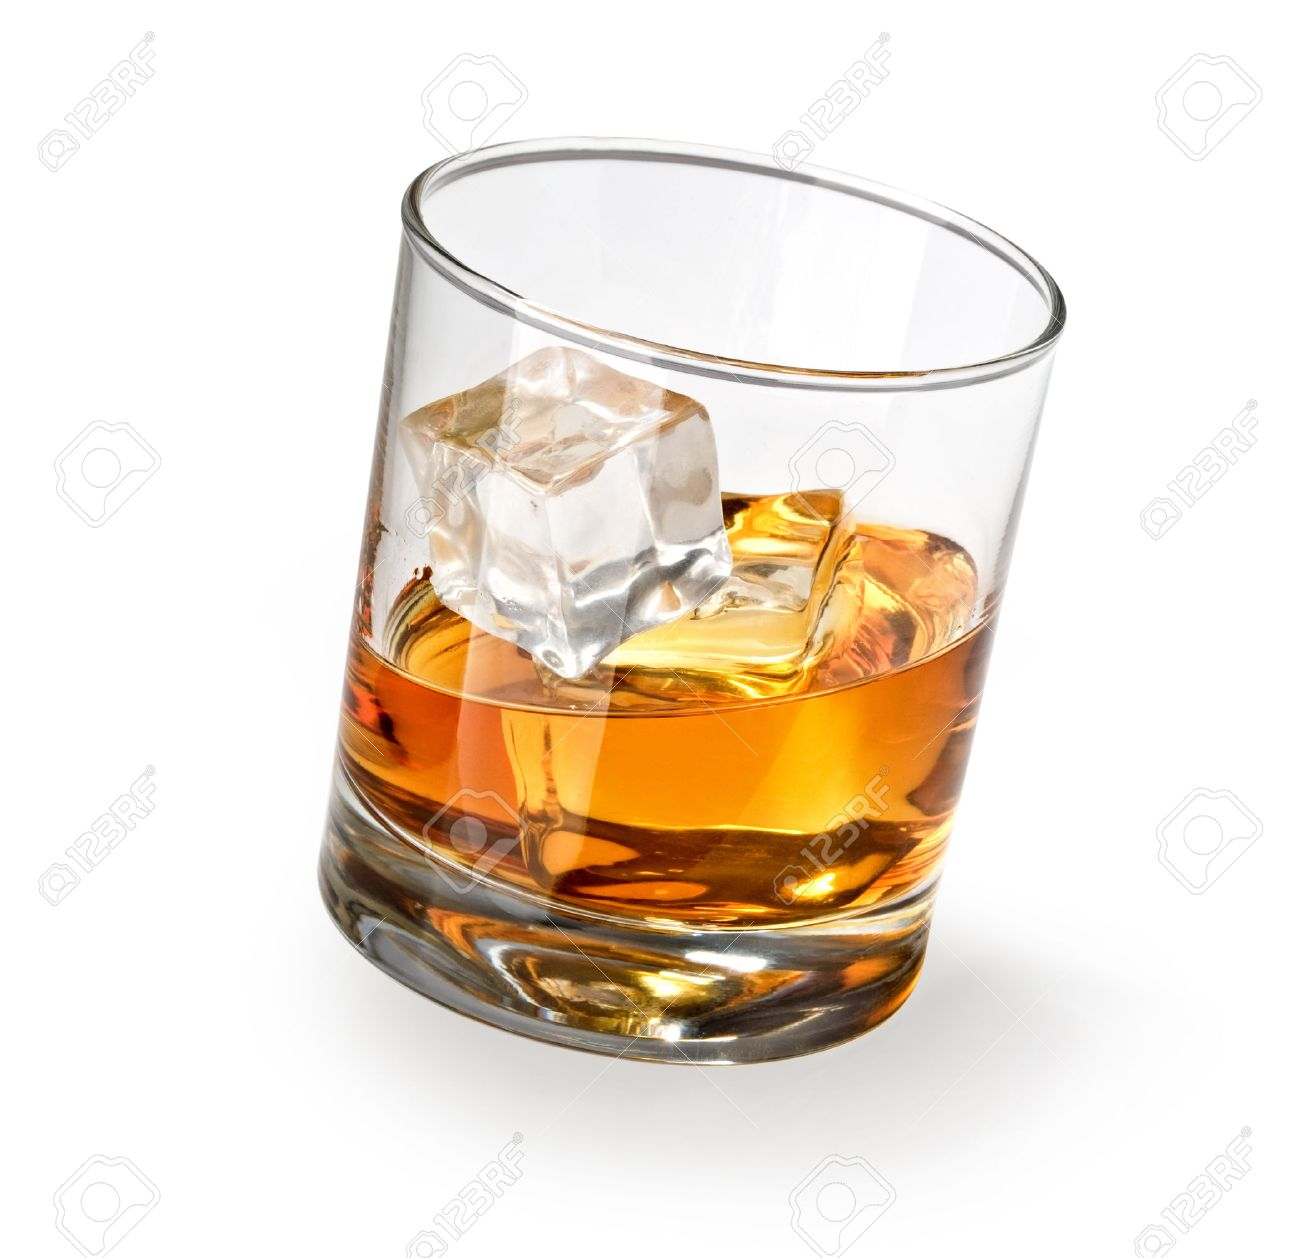 Wisky Glas Glass Of Scotch Whiskey And Ice On A White Background